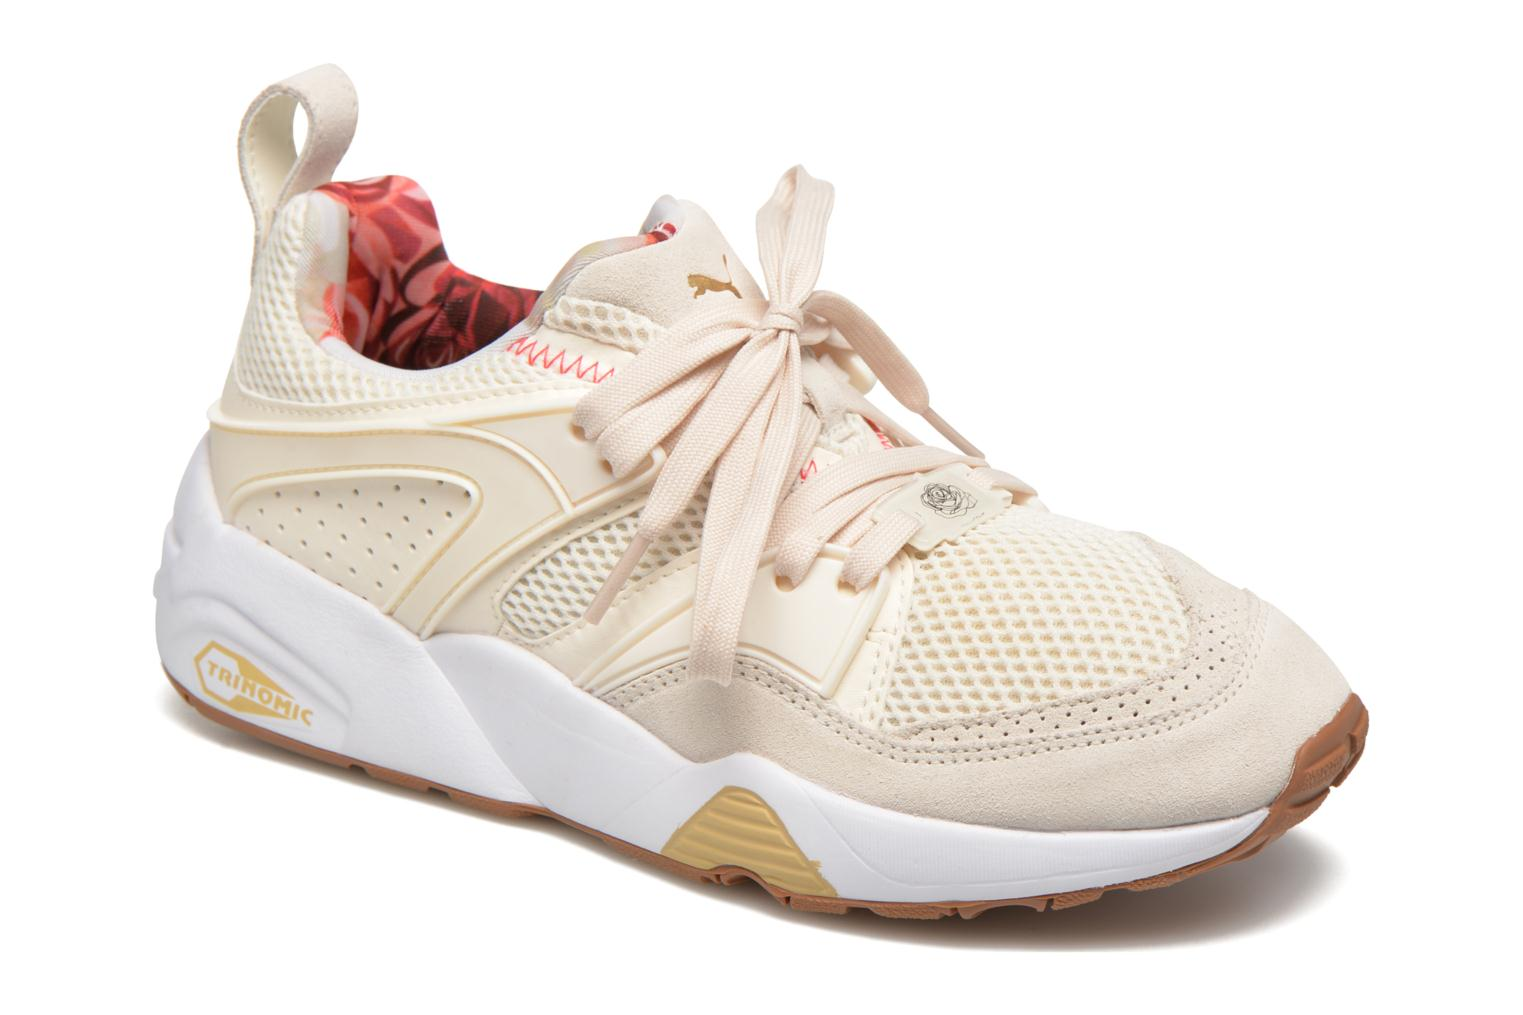 White Puma Trinomic Blaze Of Glory X Careaux (Blanc)